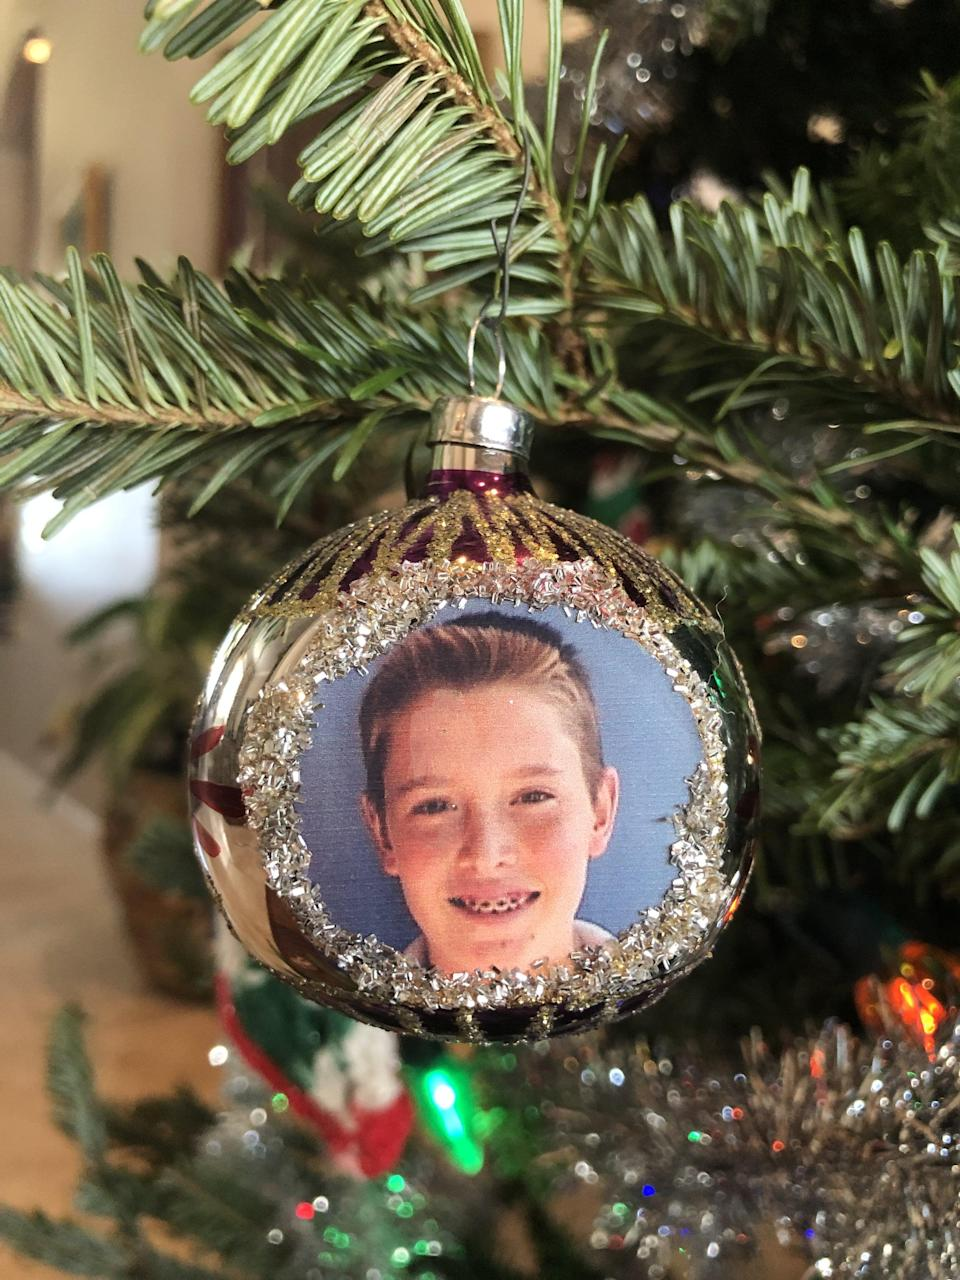 <p>I can smell the hair gel just looking at this ornament.</p>